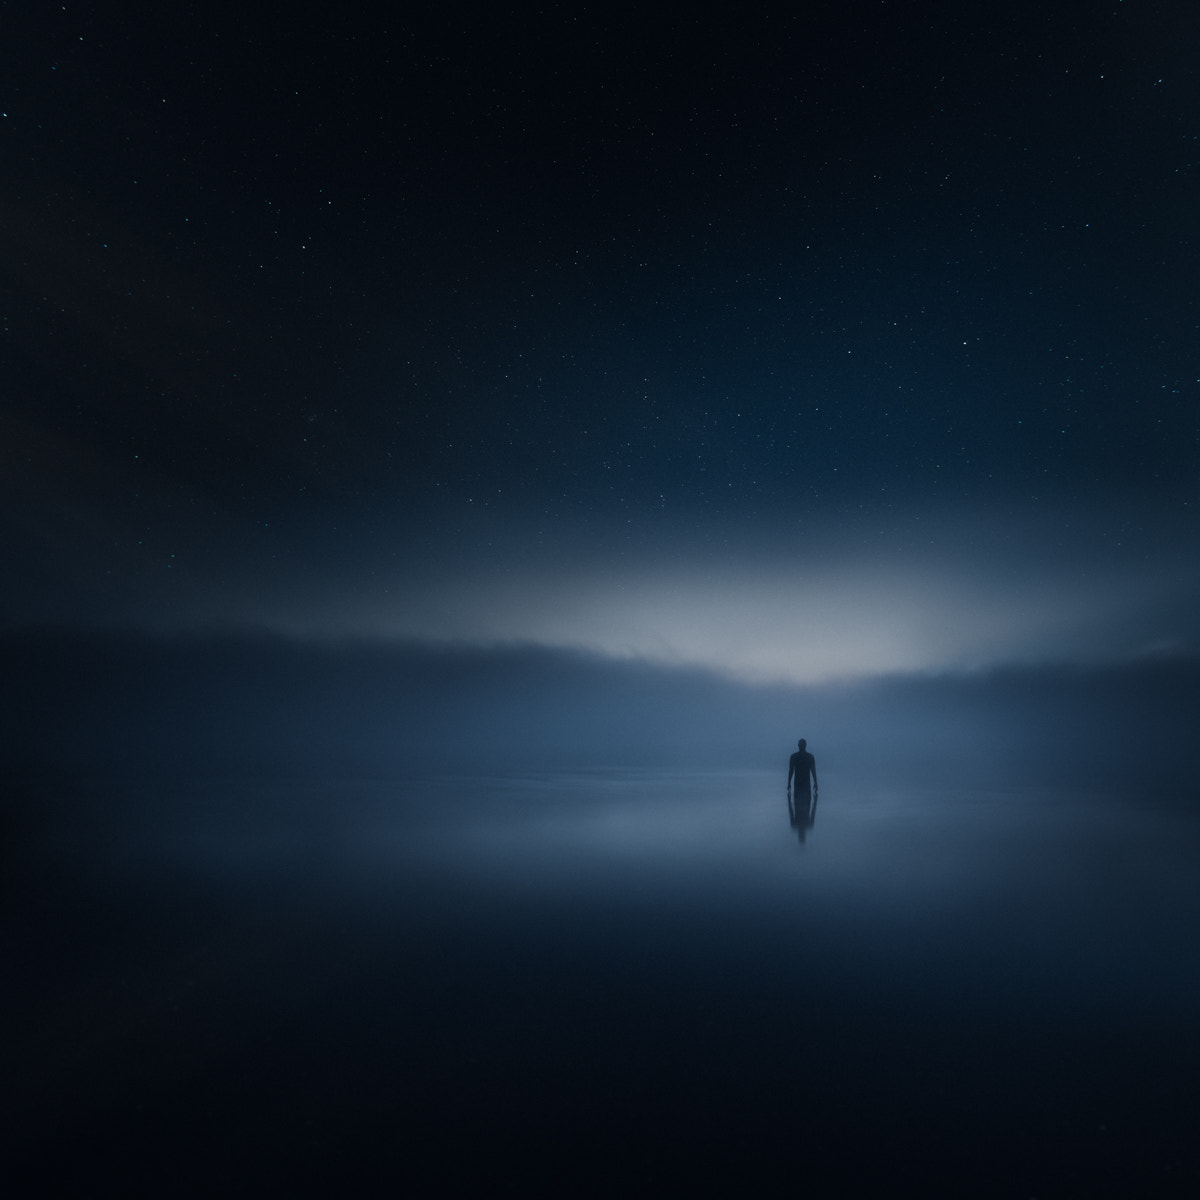 Photograph Endless Depths by Mikko Lagerstedt on 500px